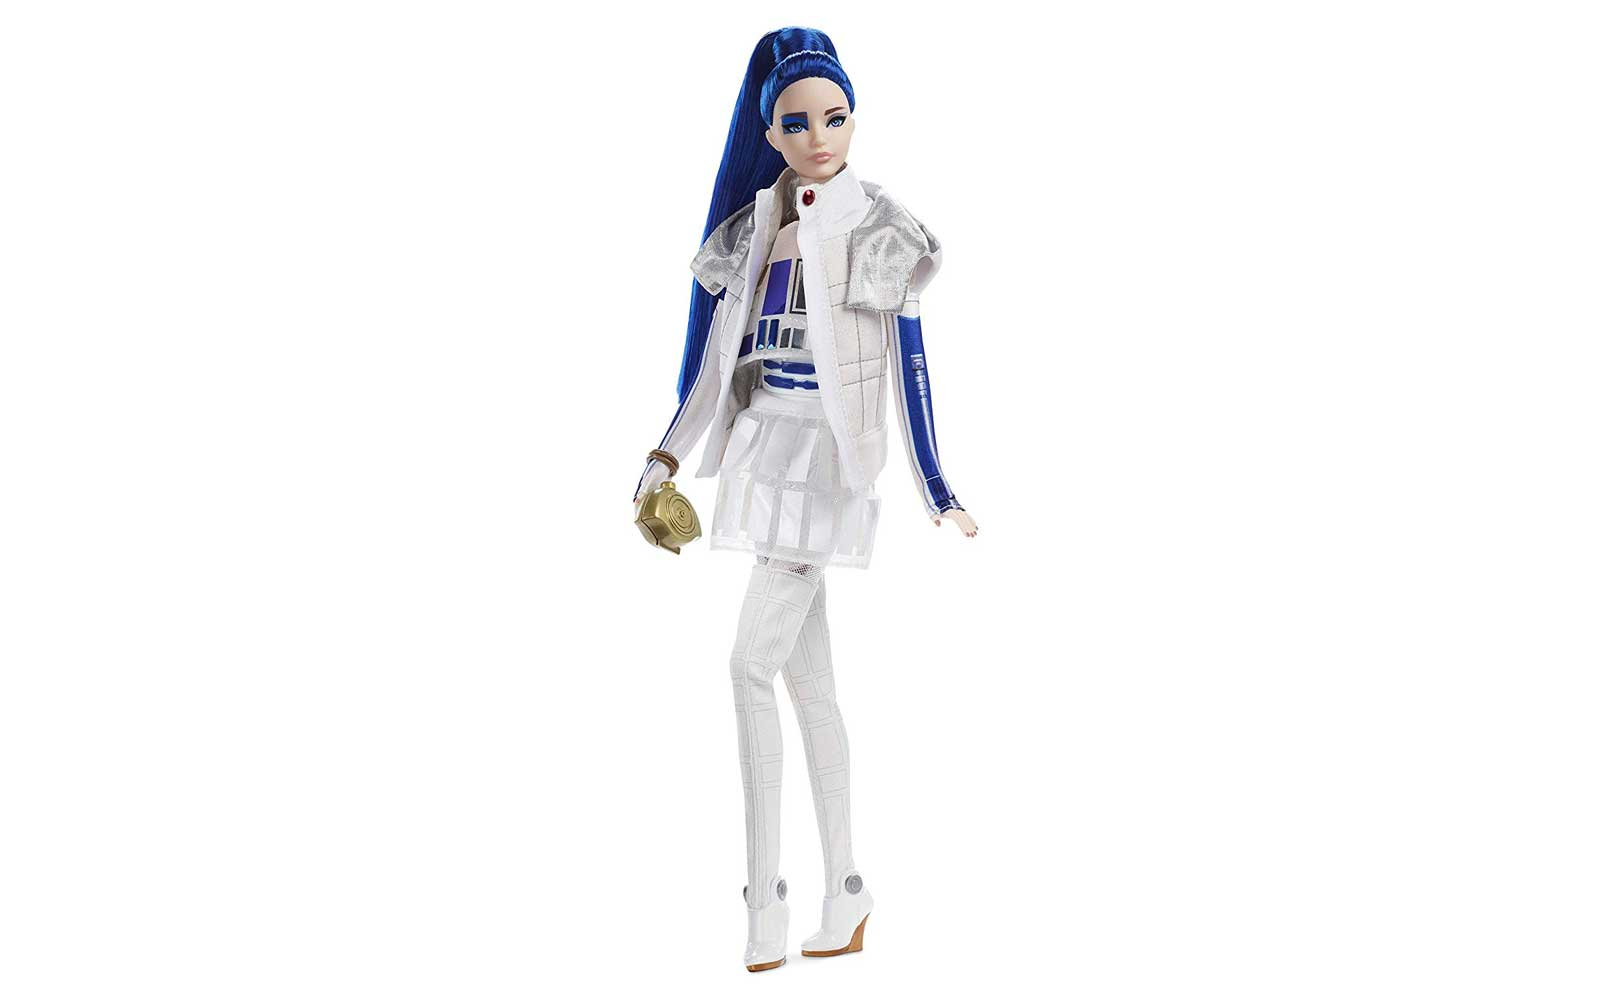 R2-D2 Star Wars Barbie Doll